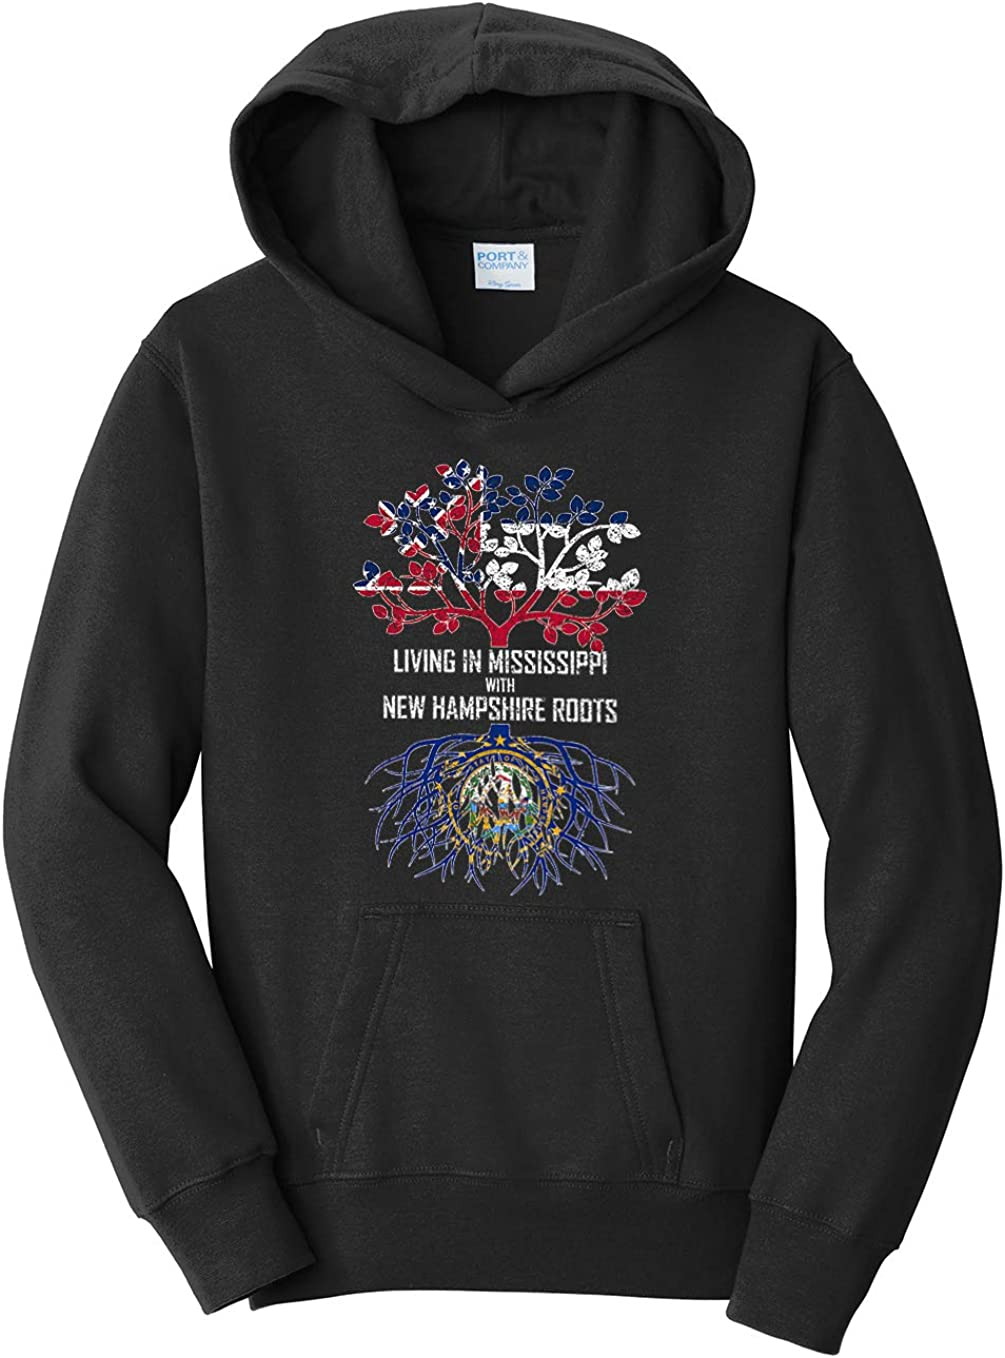 Tenacitee Girls Living in Mississippi with New Hampshire Roots Hooded Sweatshirt